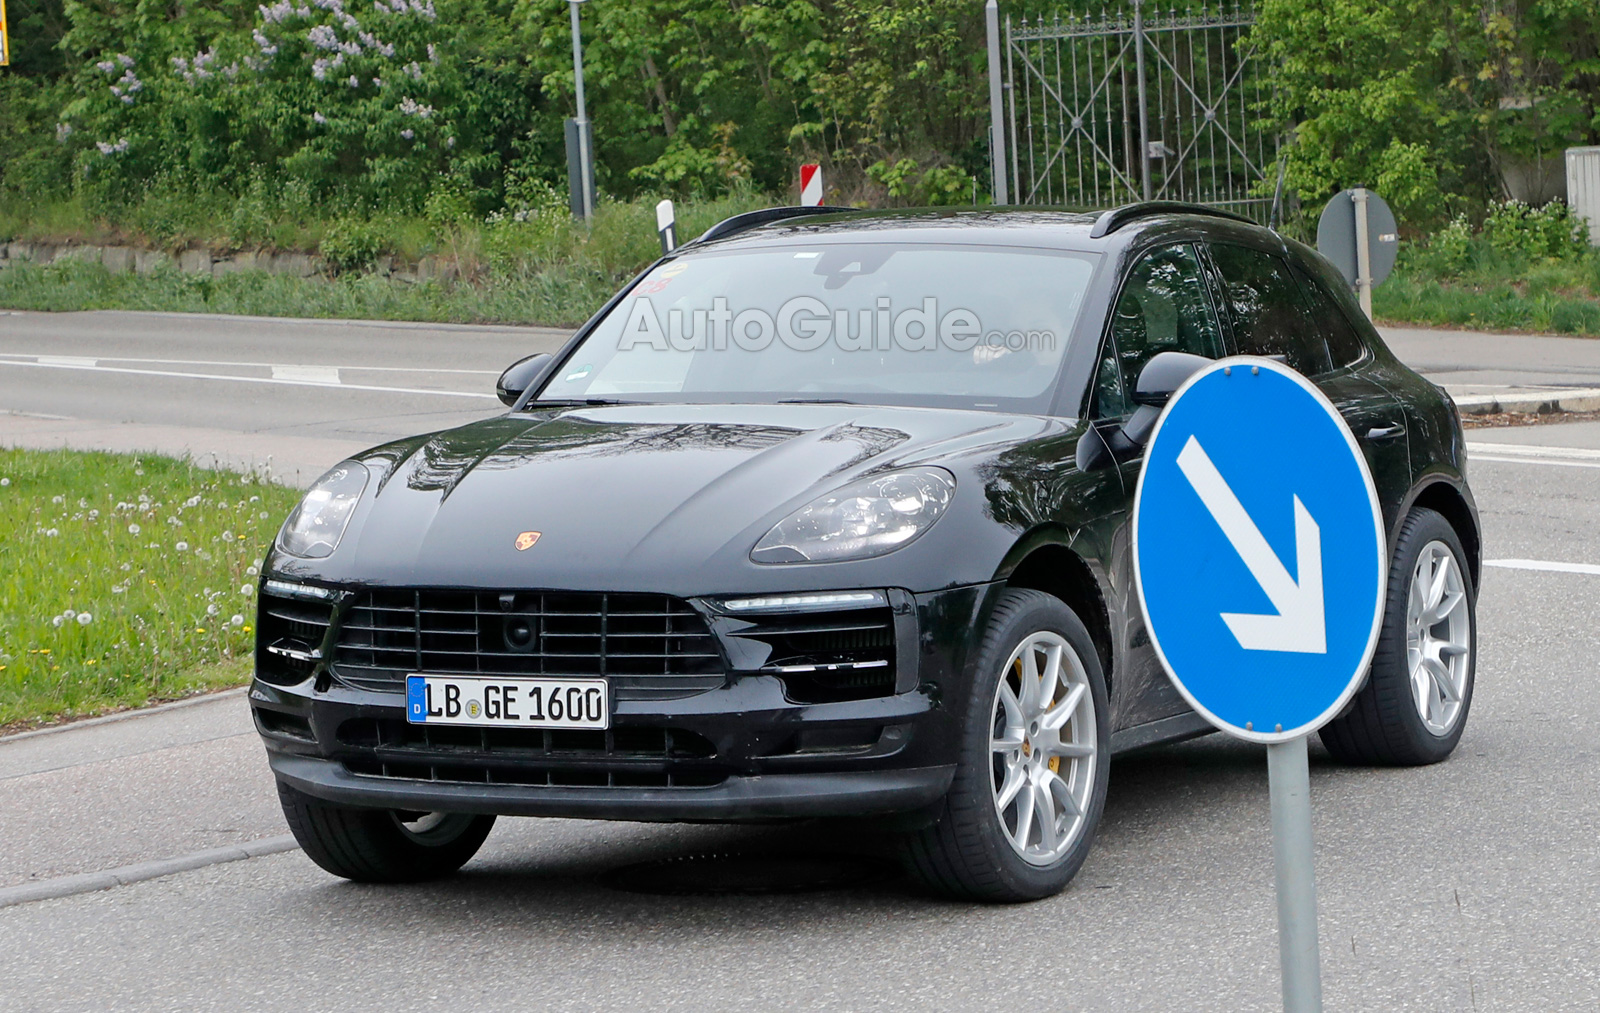 Facelifted Porsche Macan Spied Looking Exactly the Same » AutoGuide